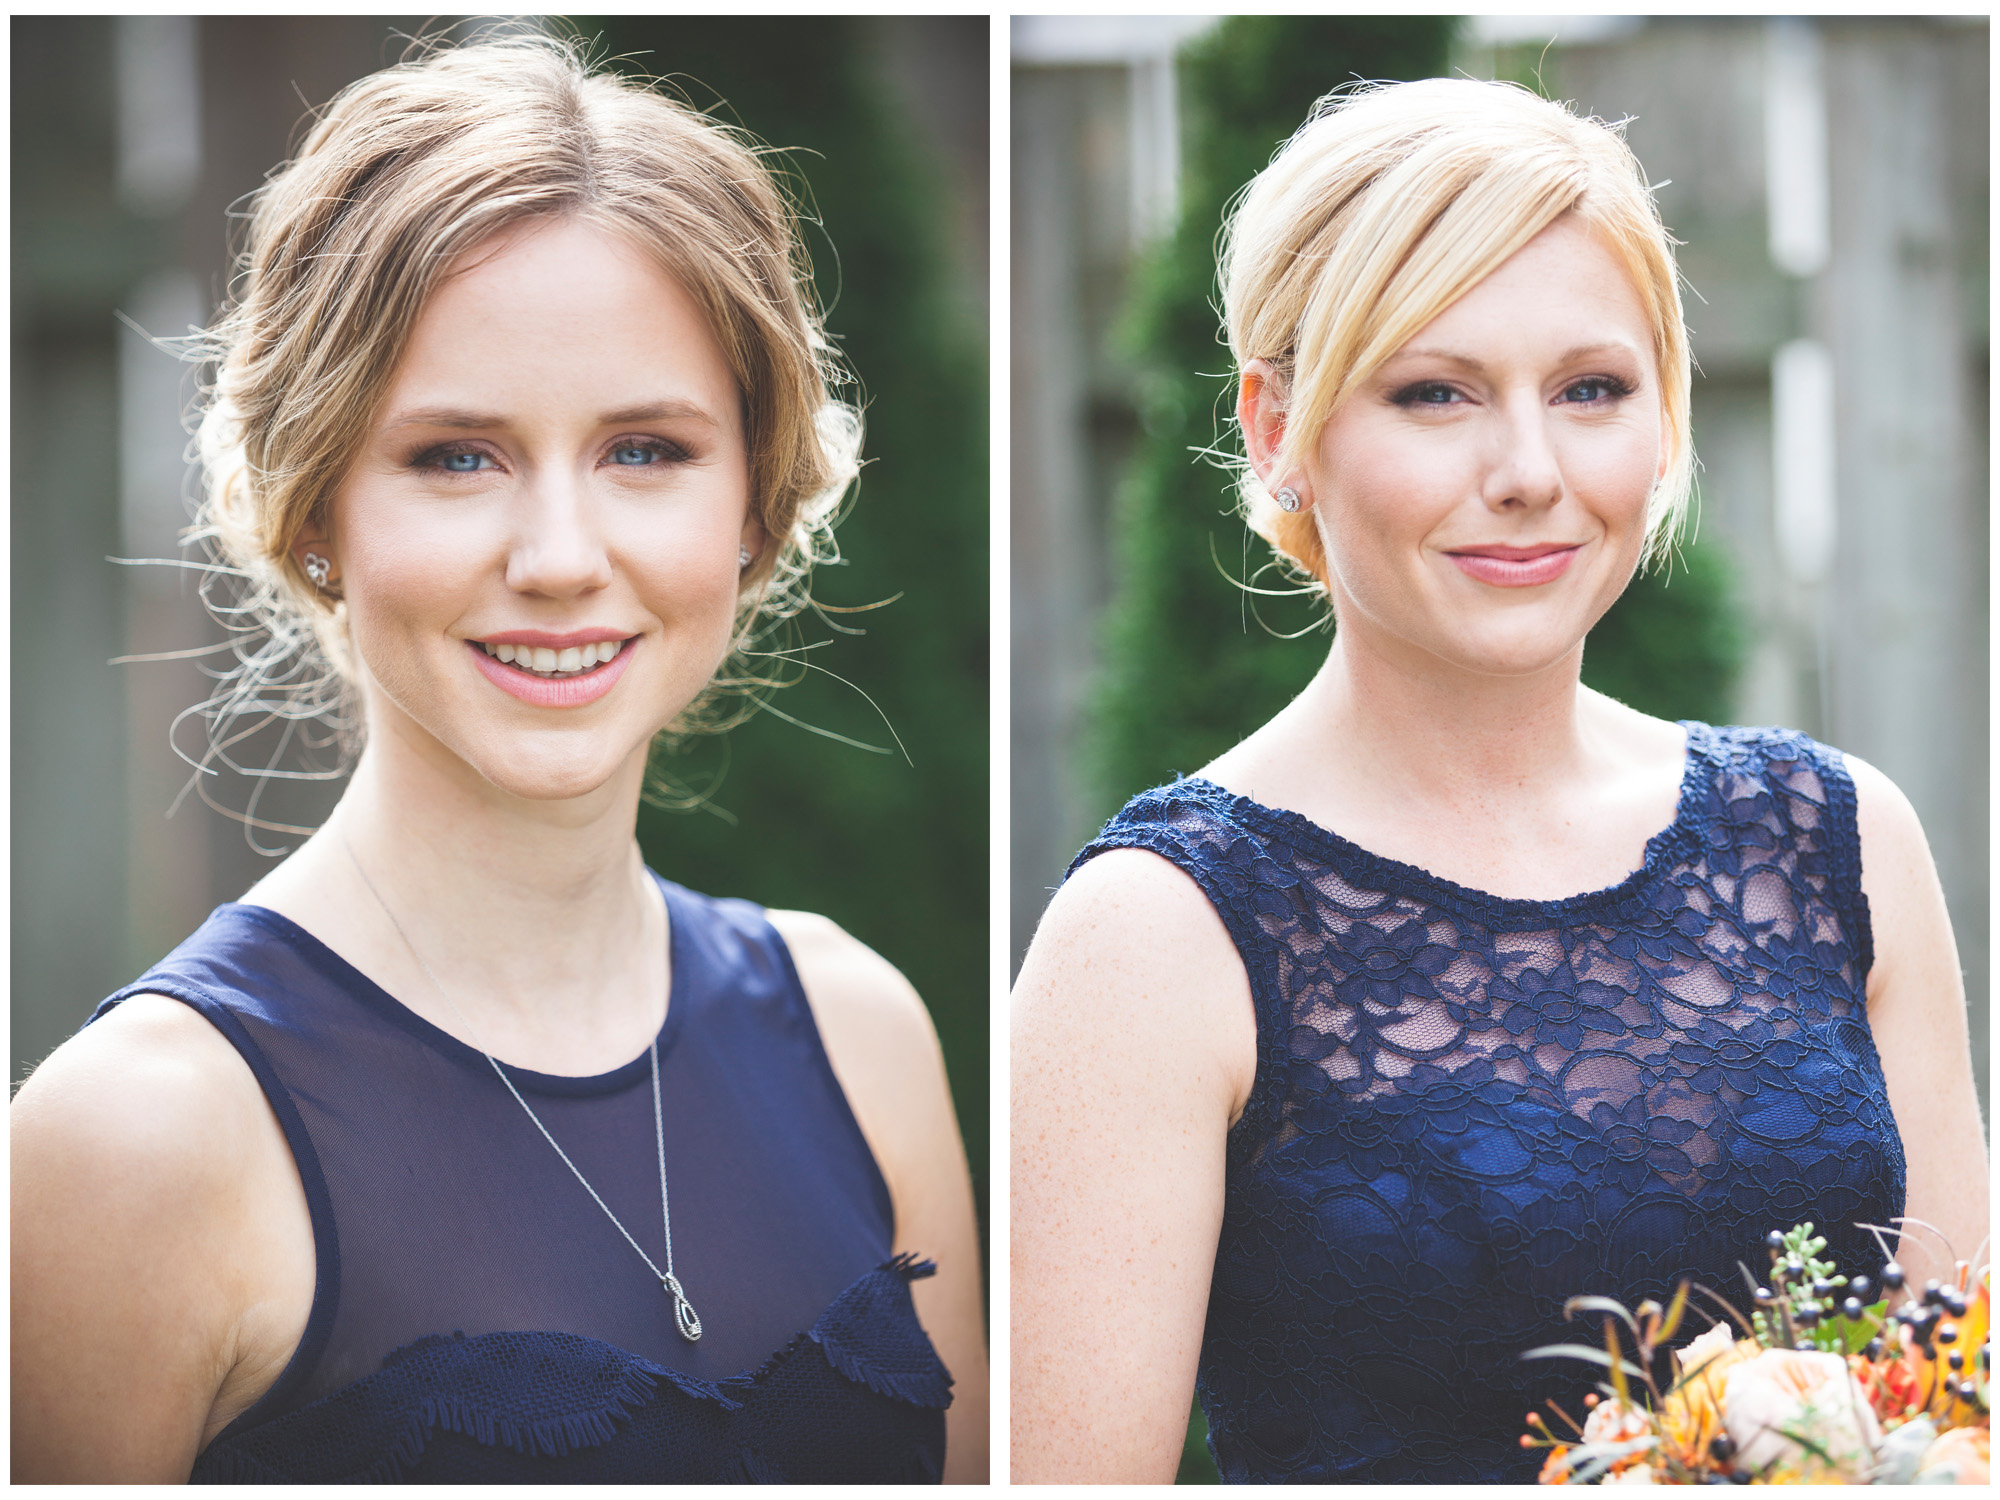 Bridesmaids portraits are always fun.